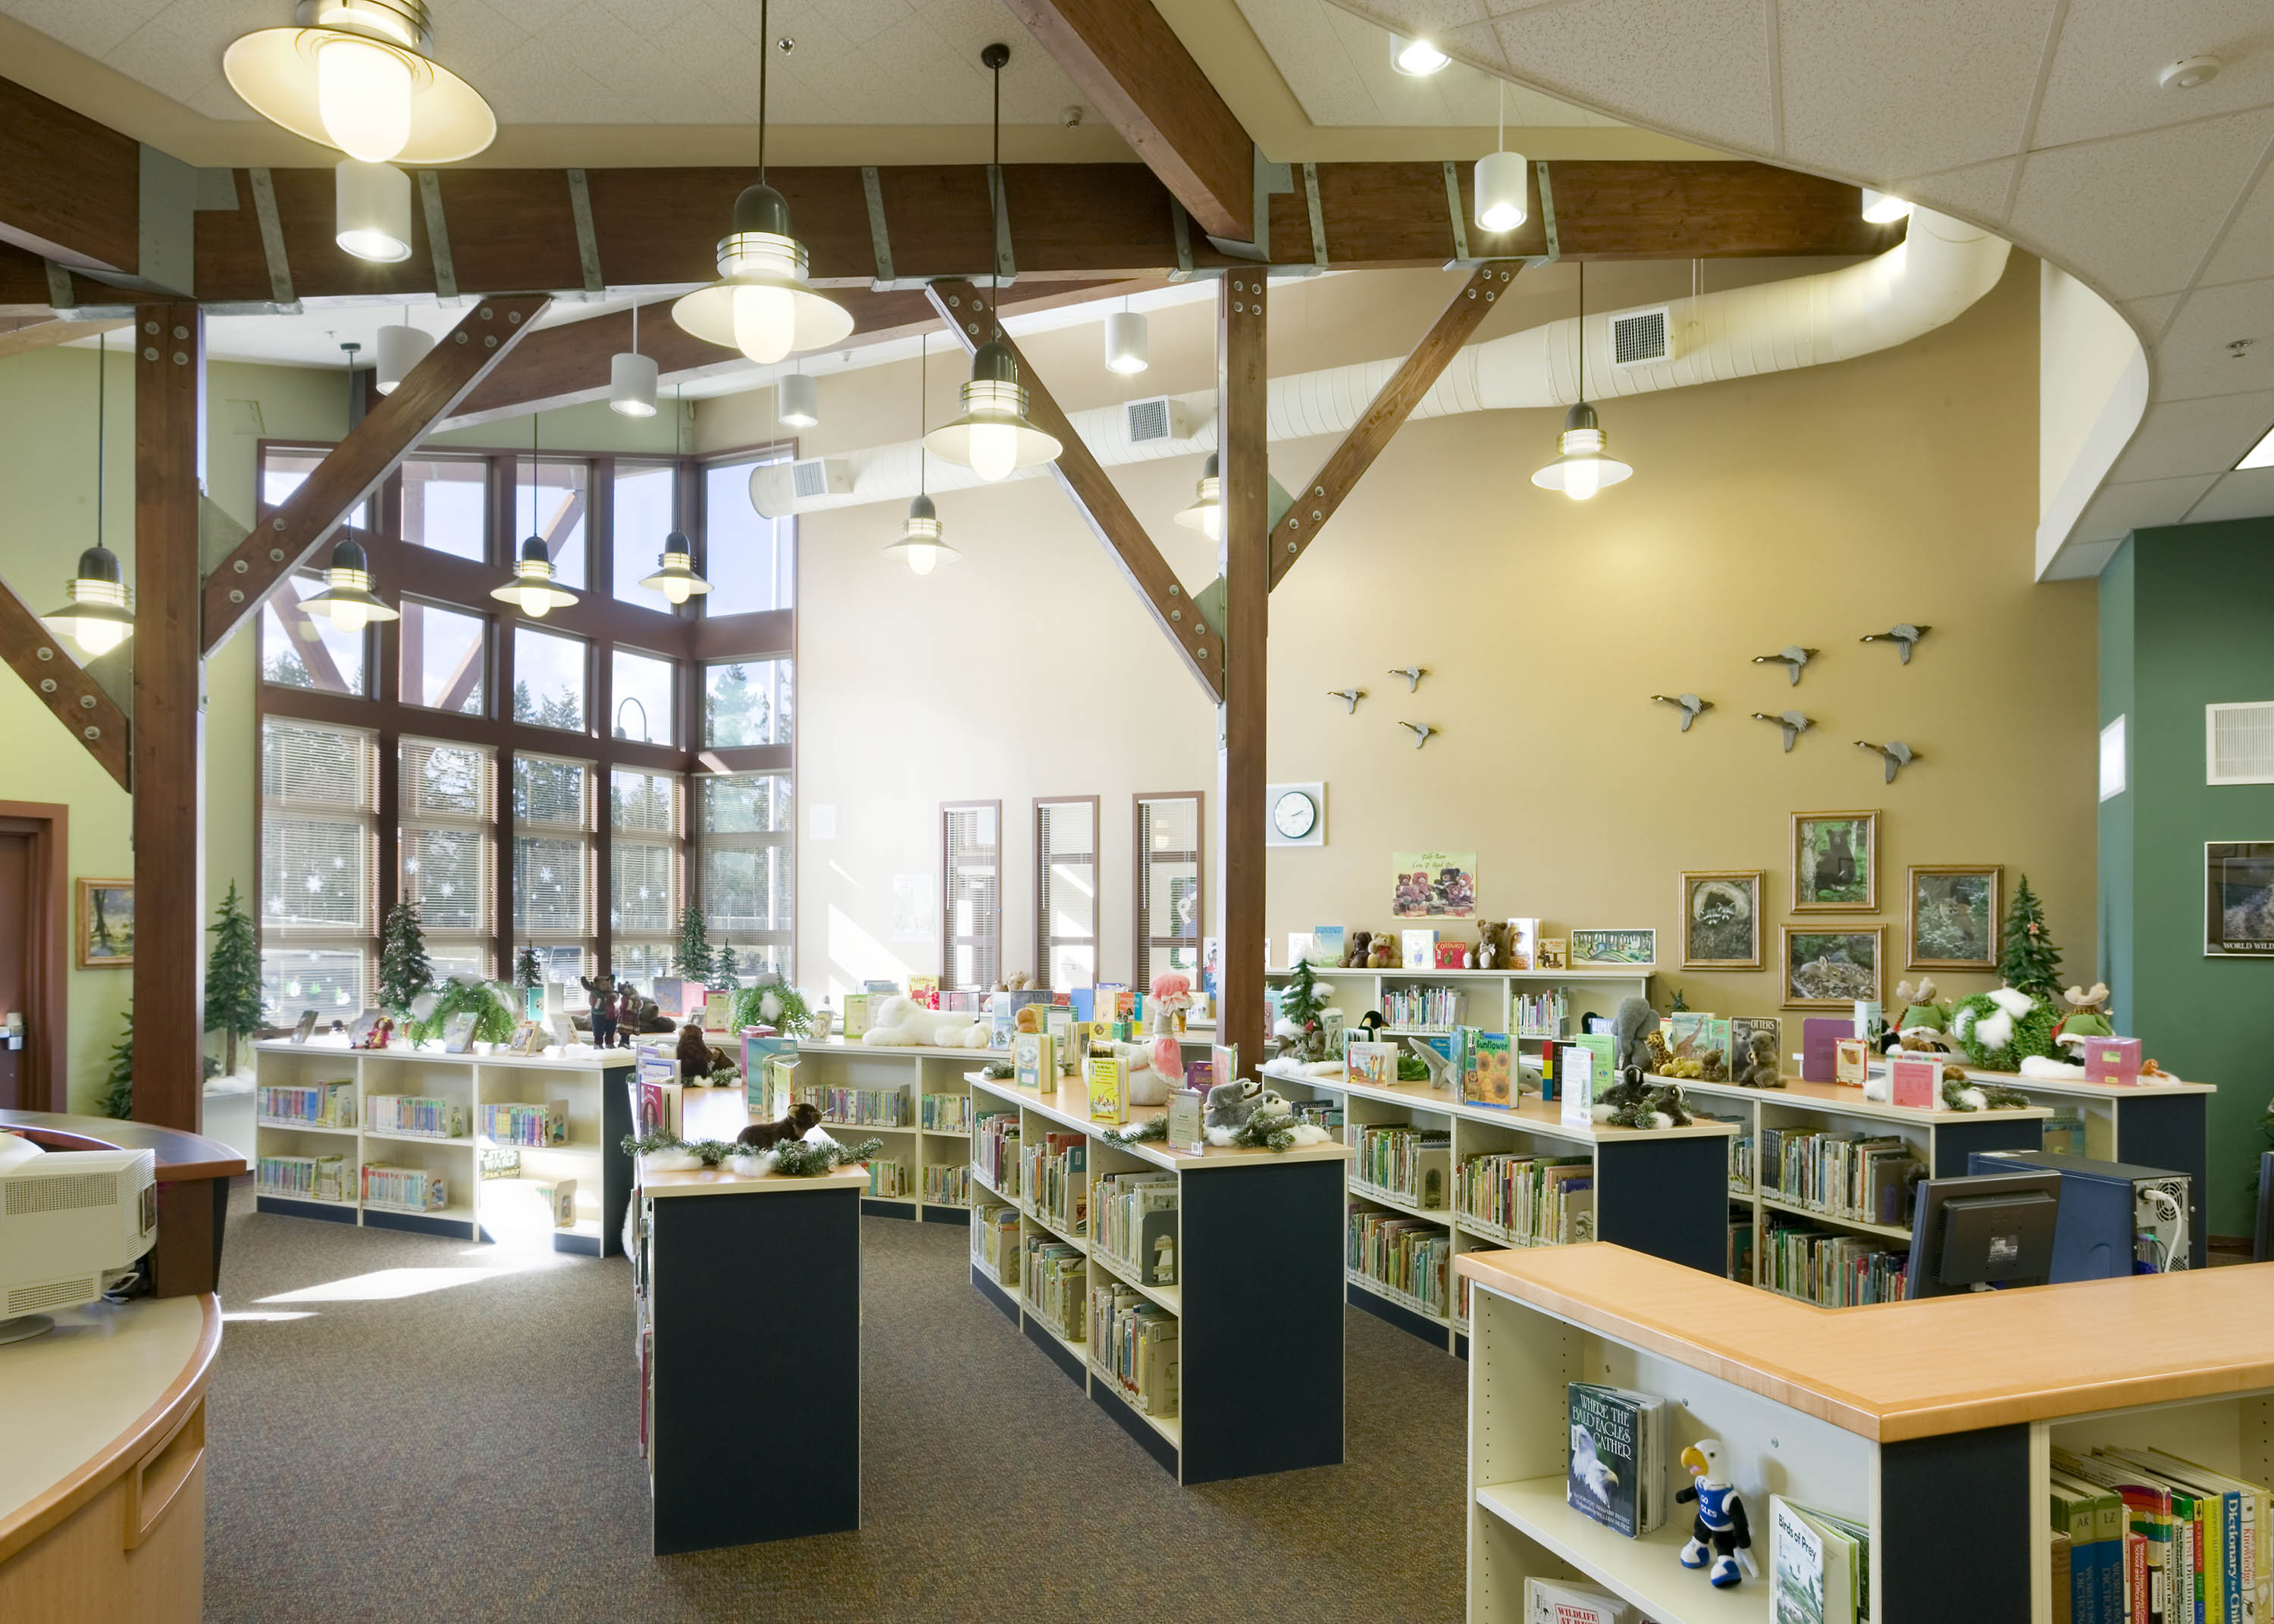 Wide photo of the library with natural light flooding in.